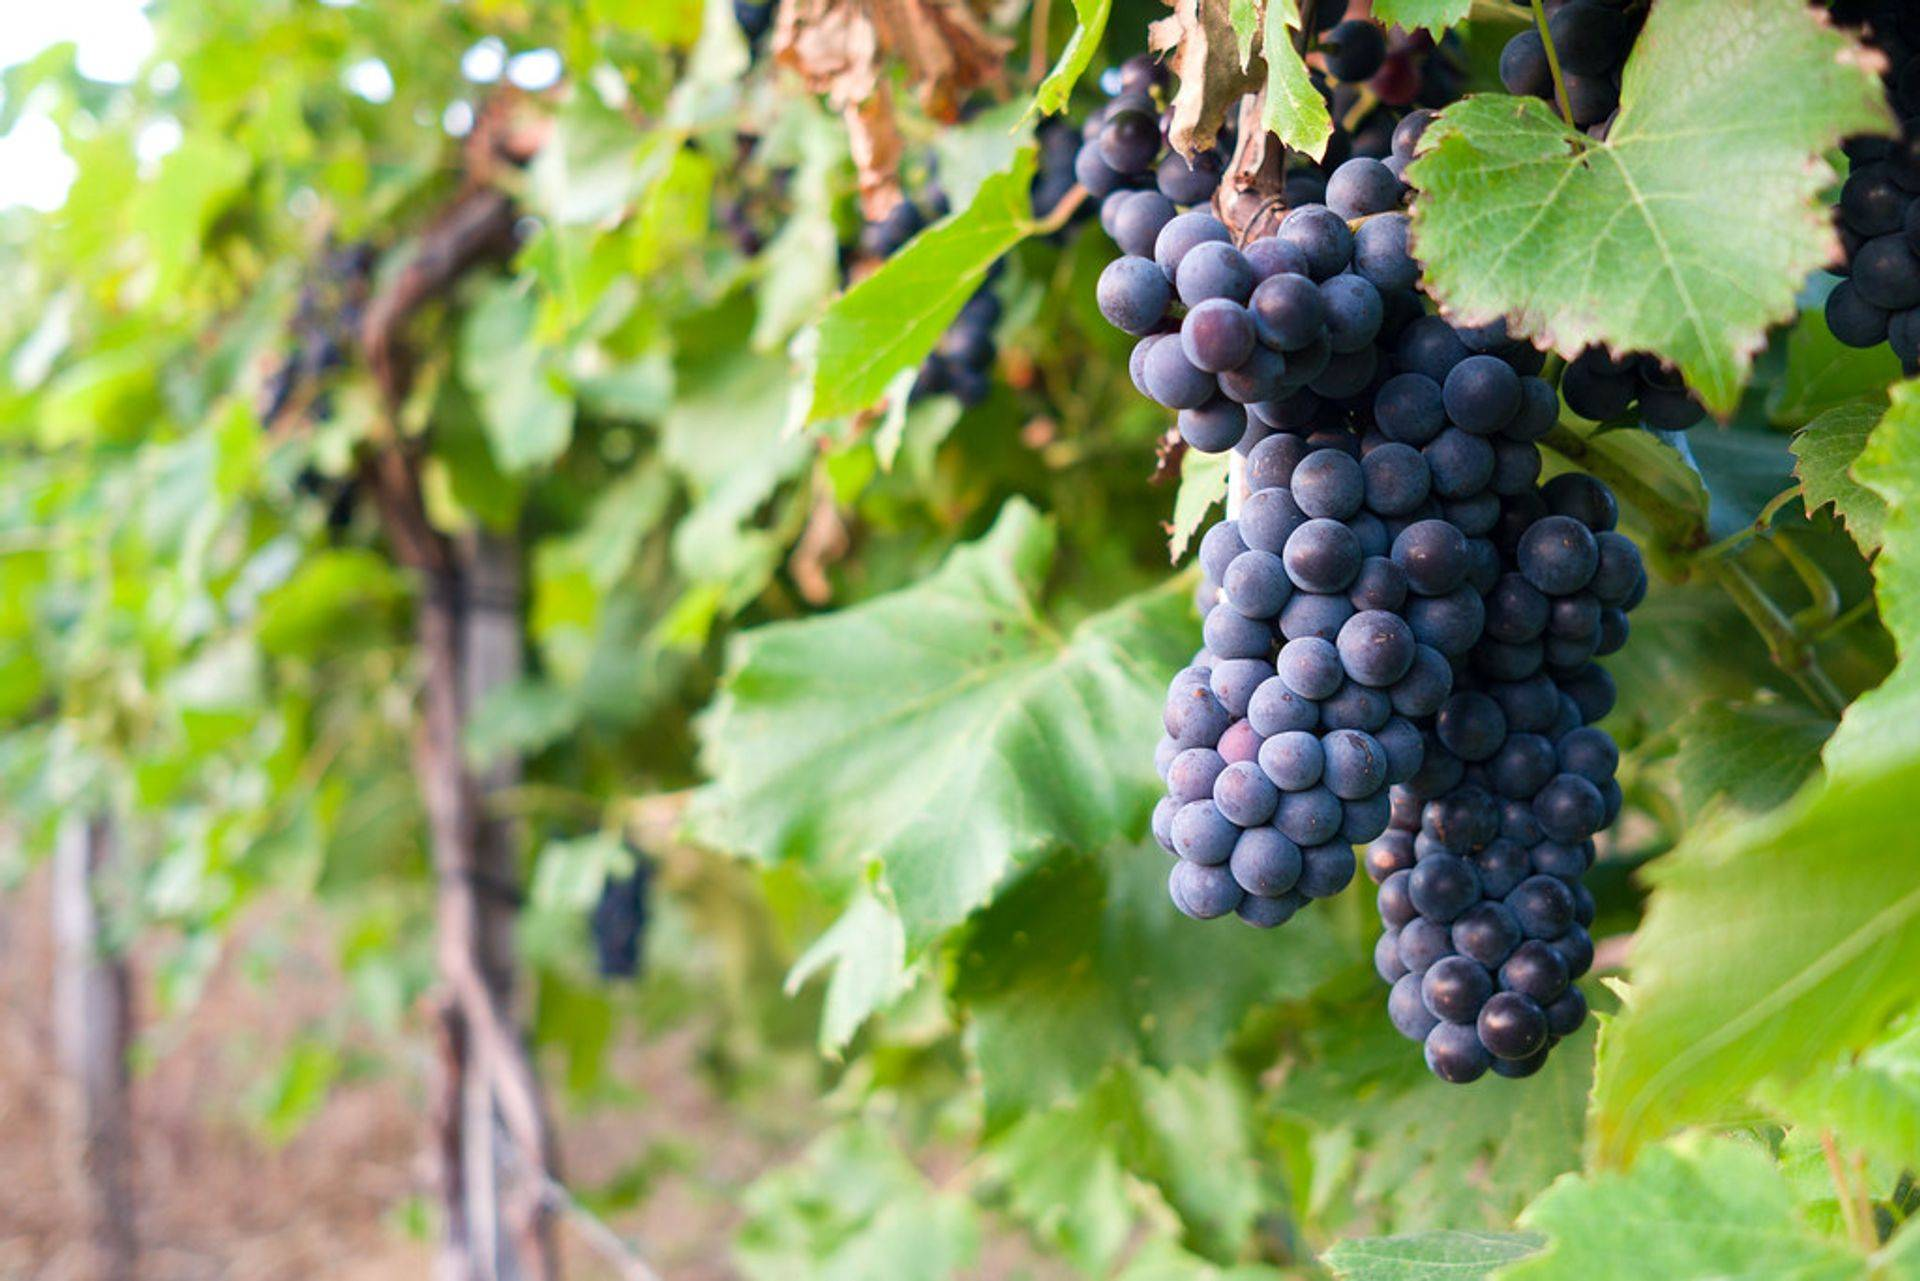 We only use the best Pinot Noir grapes in our wine